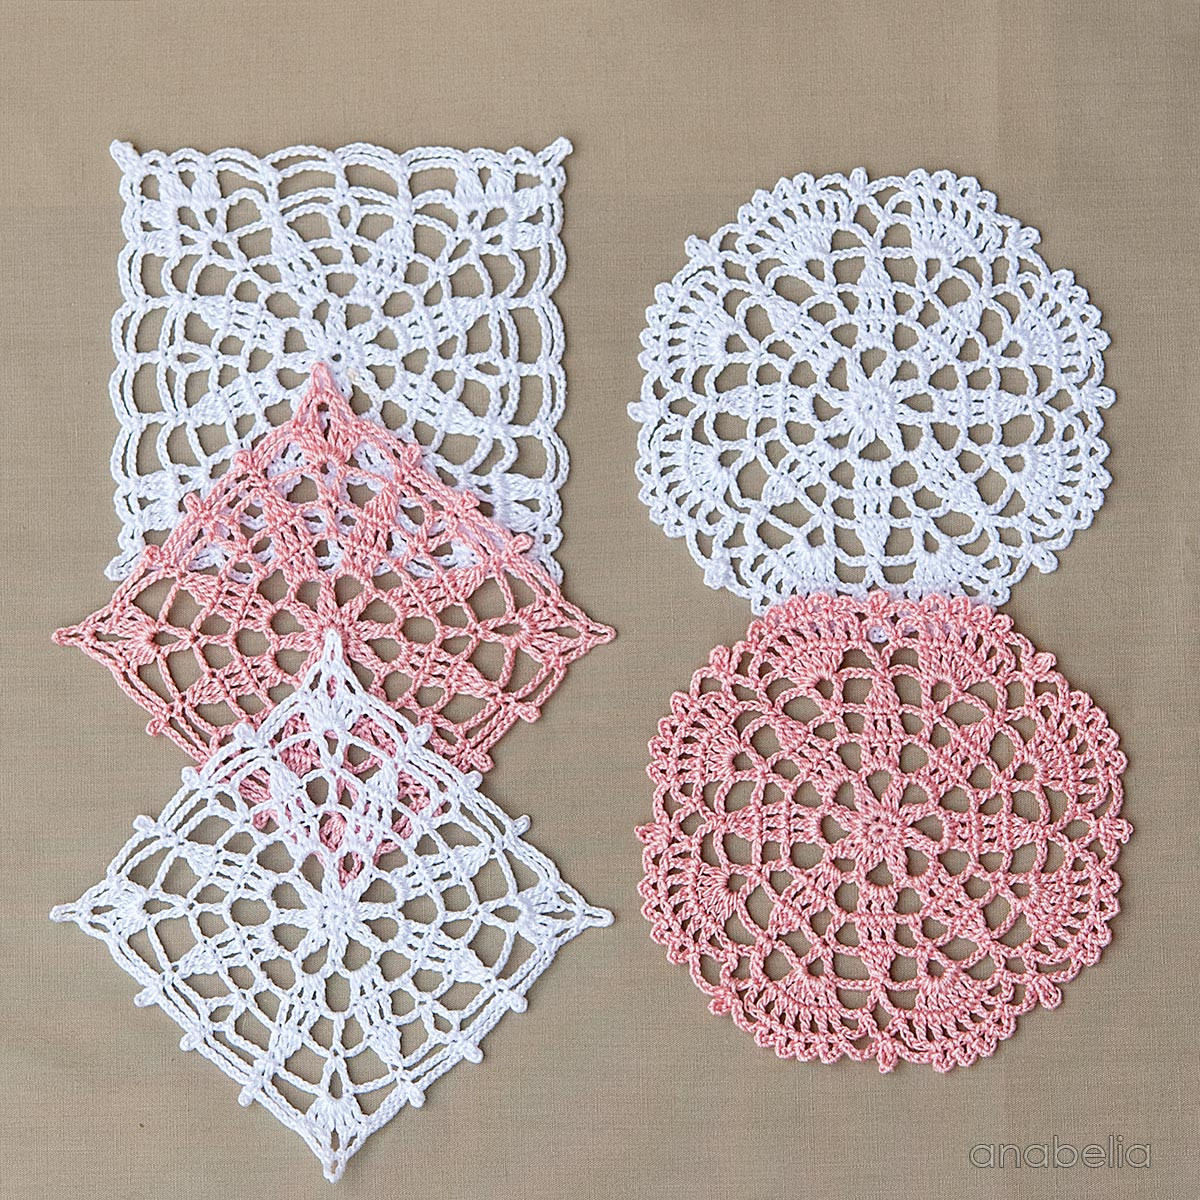 Crochet Lace Pattern Beautiful Crochet Lace Motifs In Pink and White Free Patterns Of Gorgeous 50 Photos Crochet Lace Pattern